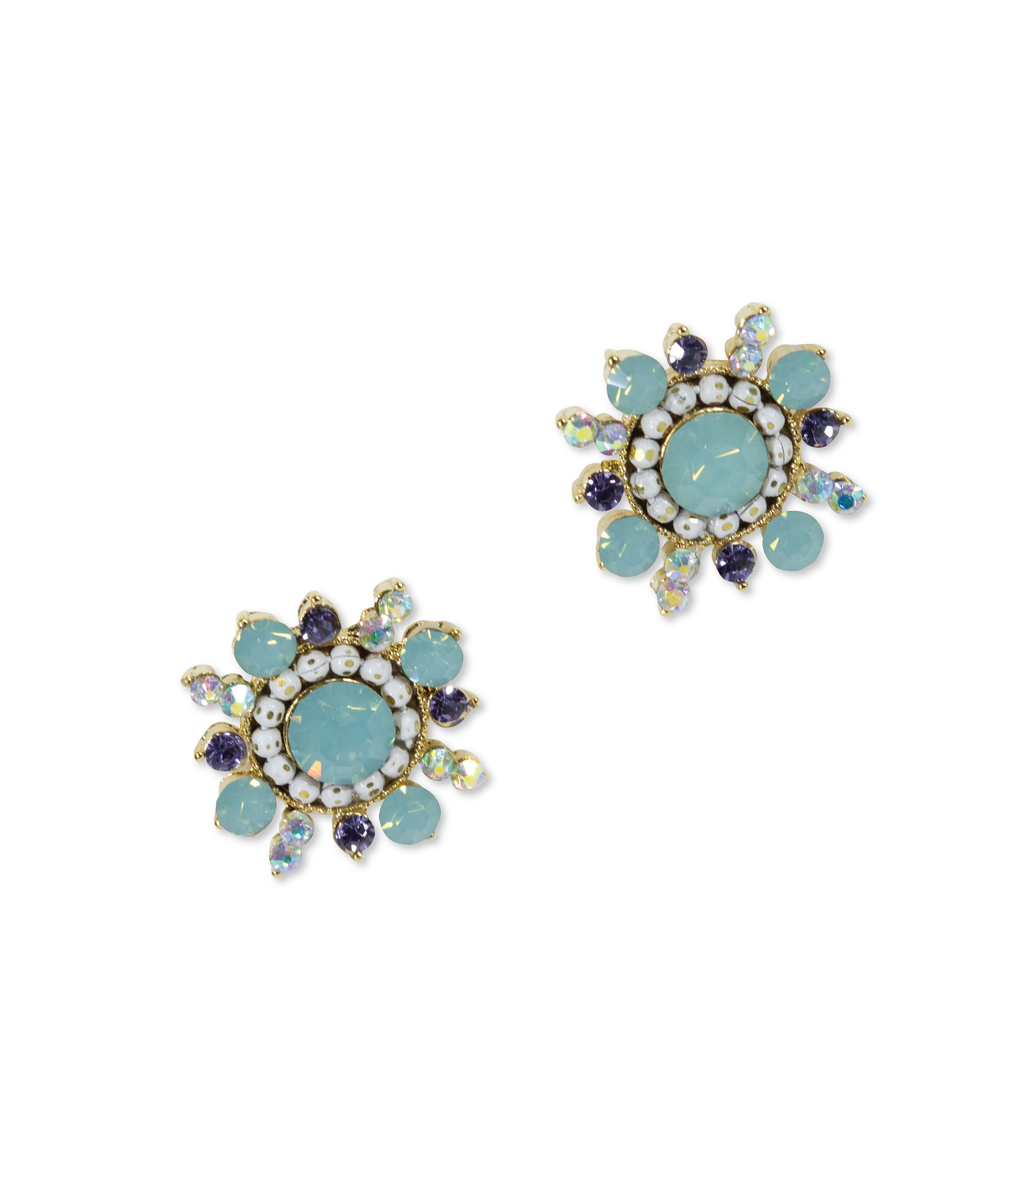 EARRINGS - Mint Starburst Stud